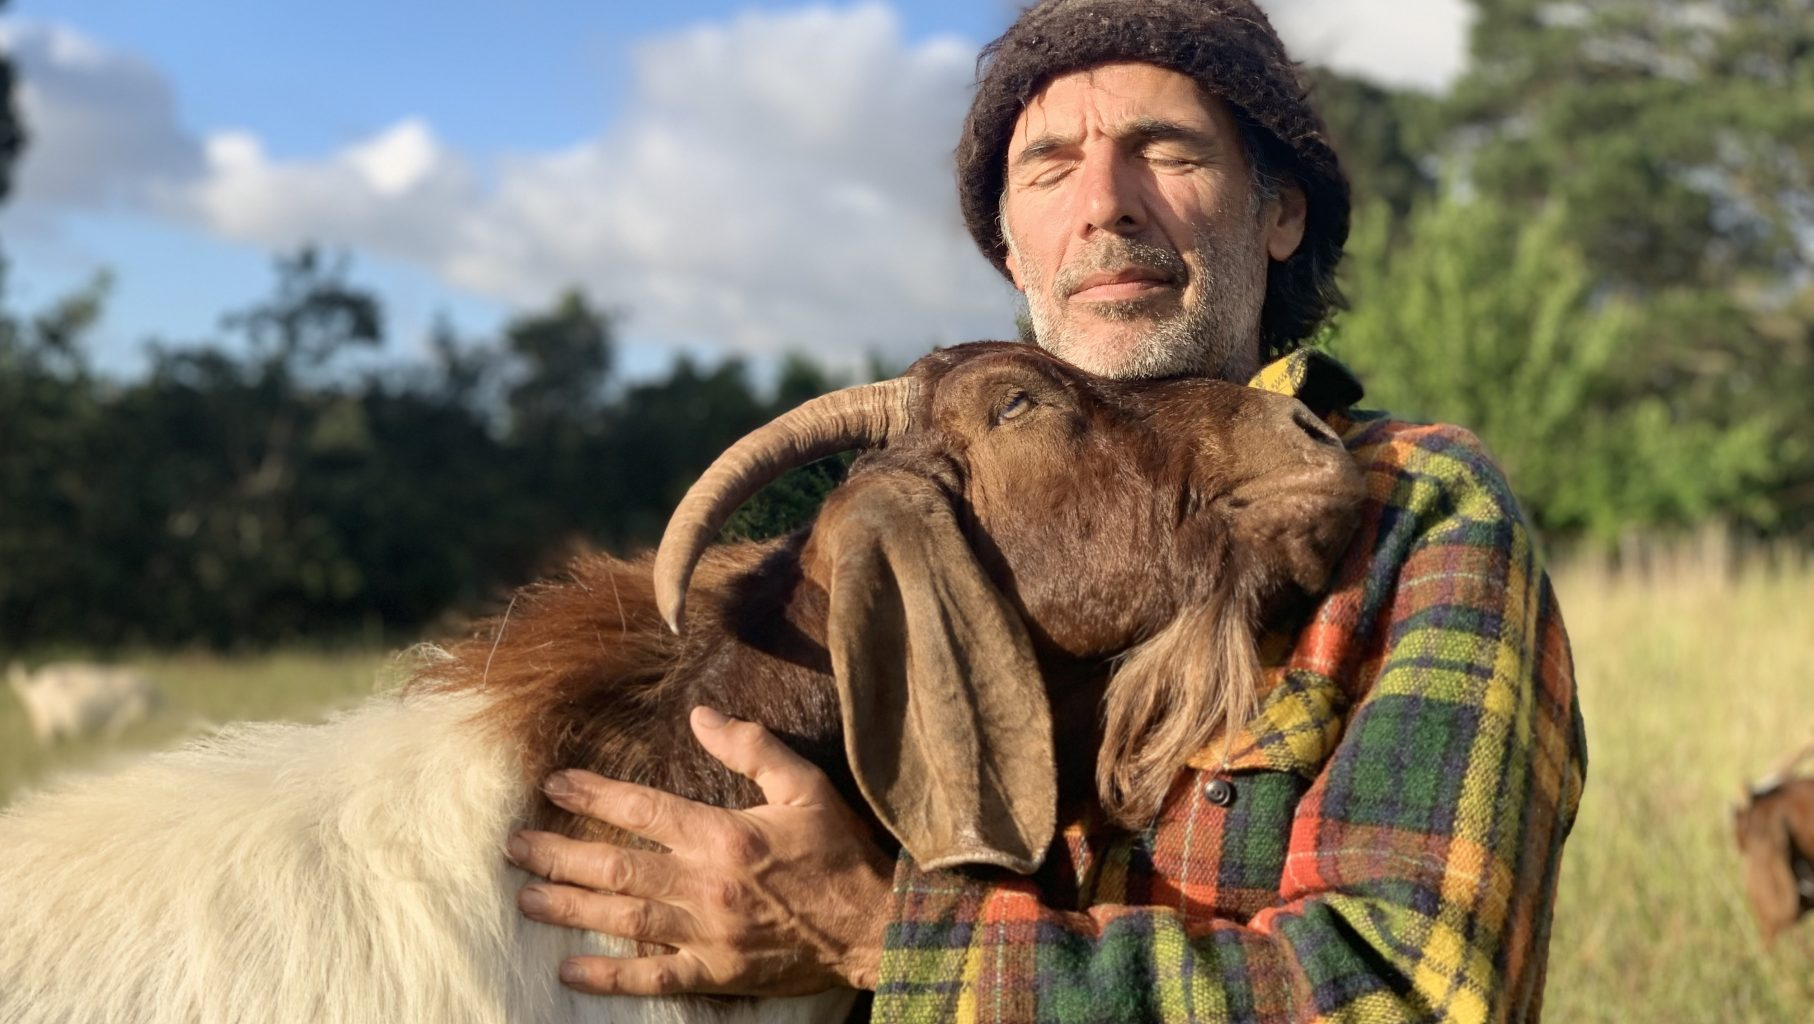 Image: Person hugging goat